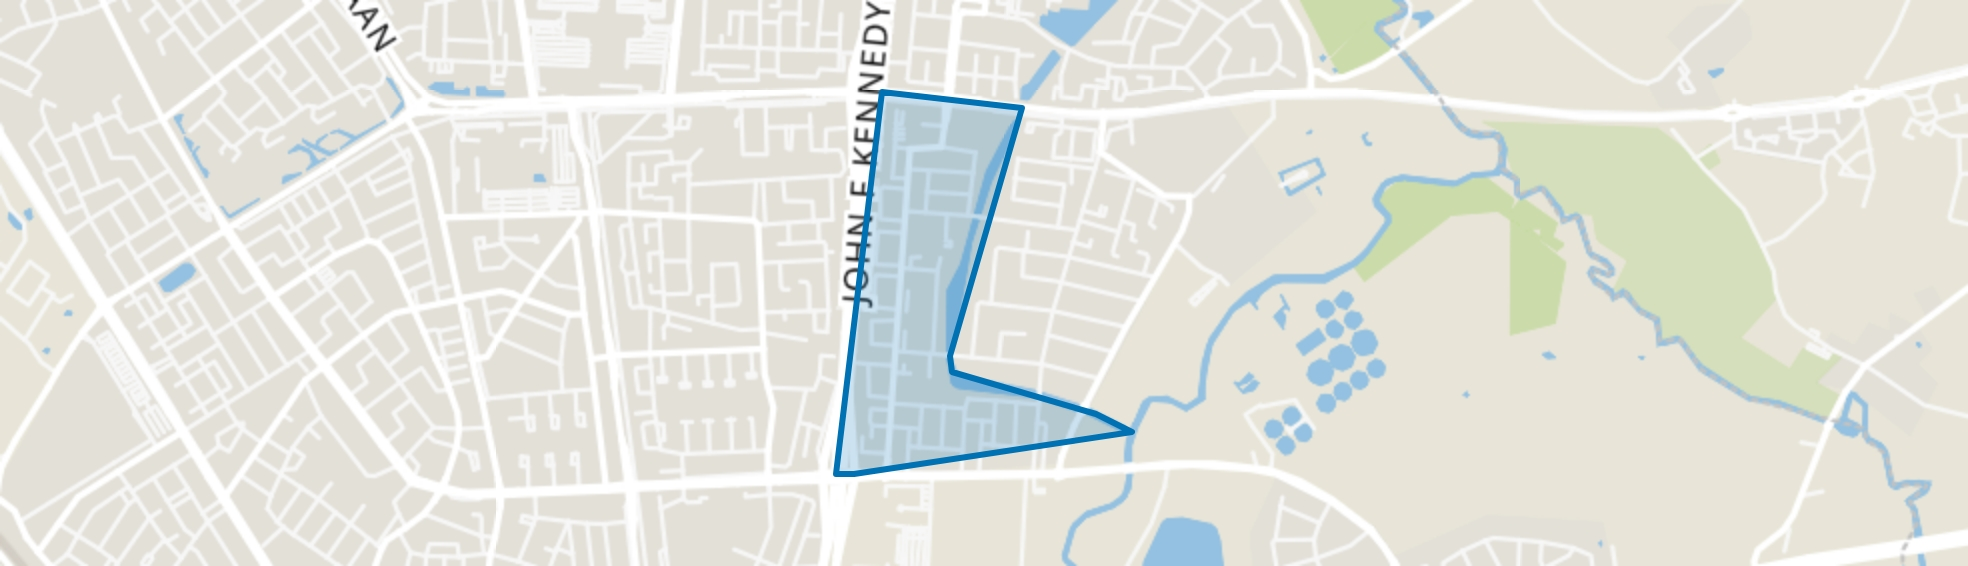 Oude Gracht-West, Eindhoven map